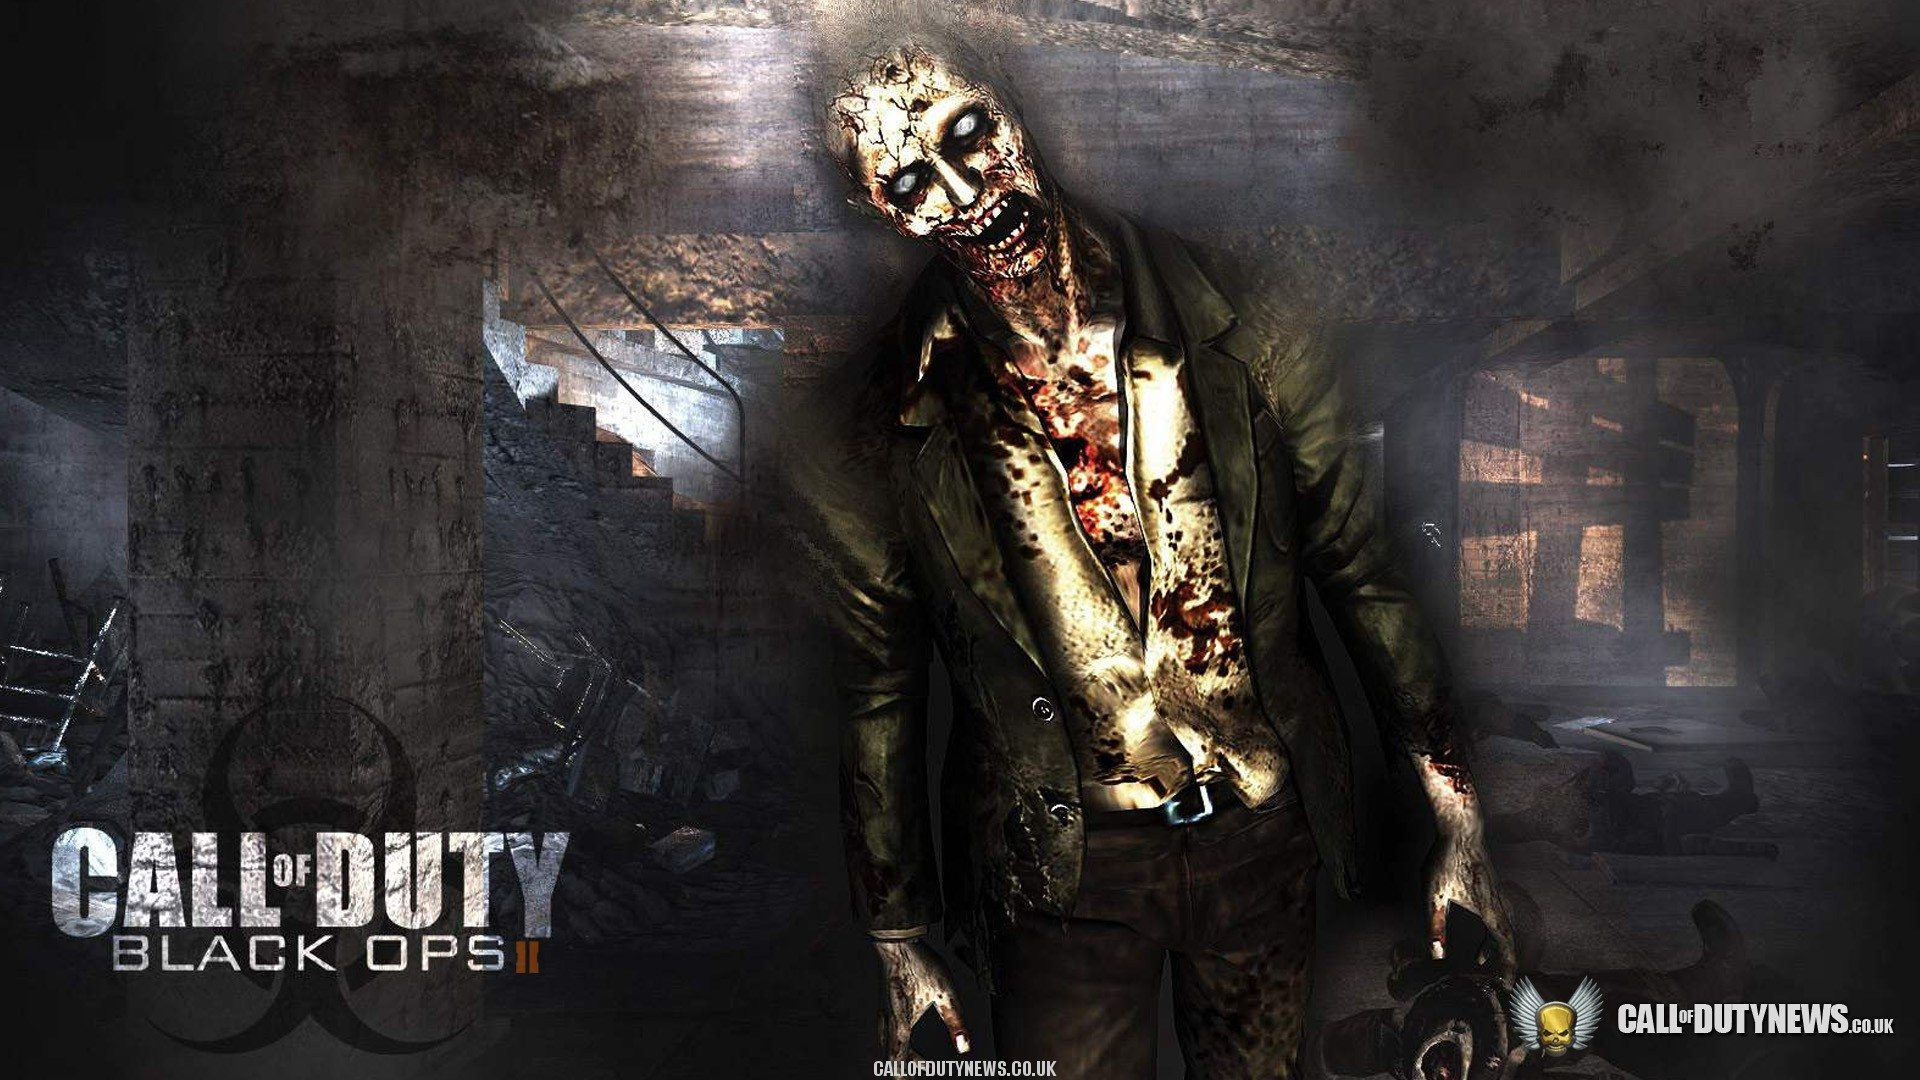 HD Call Of Duty Black Ops Wallpapers And Photos Games 1920x1080